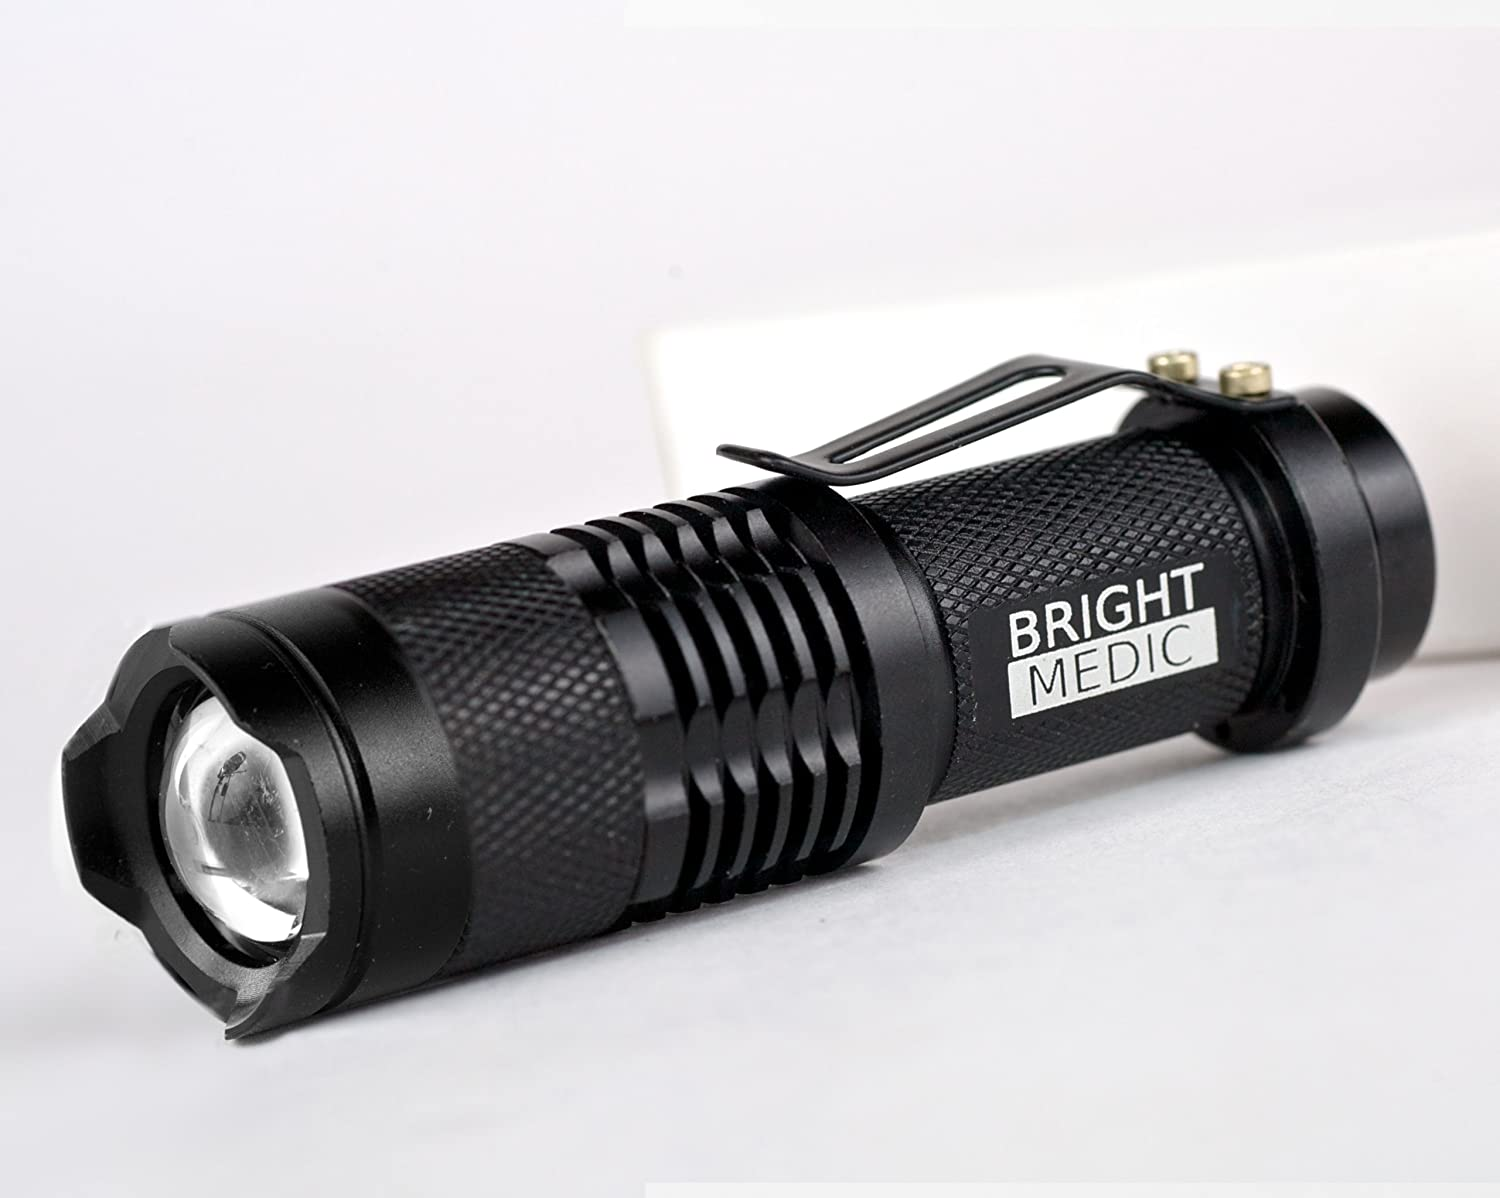 Image of the BrightMedic black flashlight on a white table.